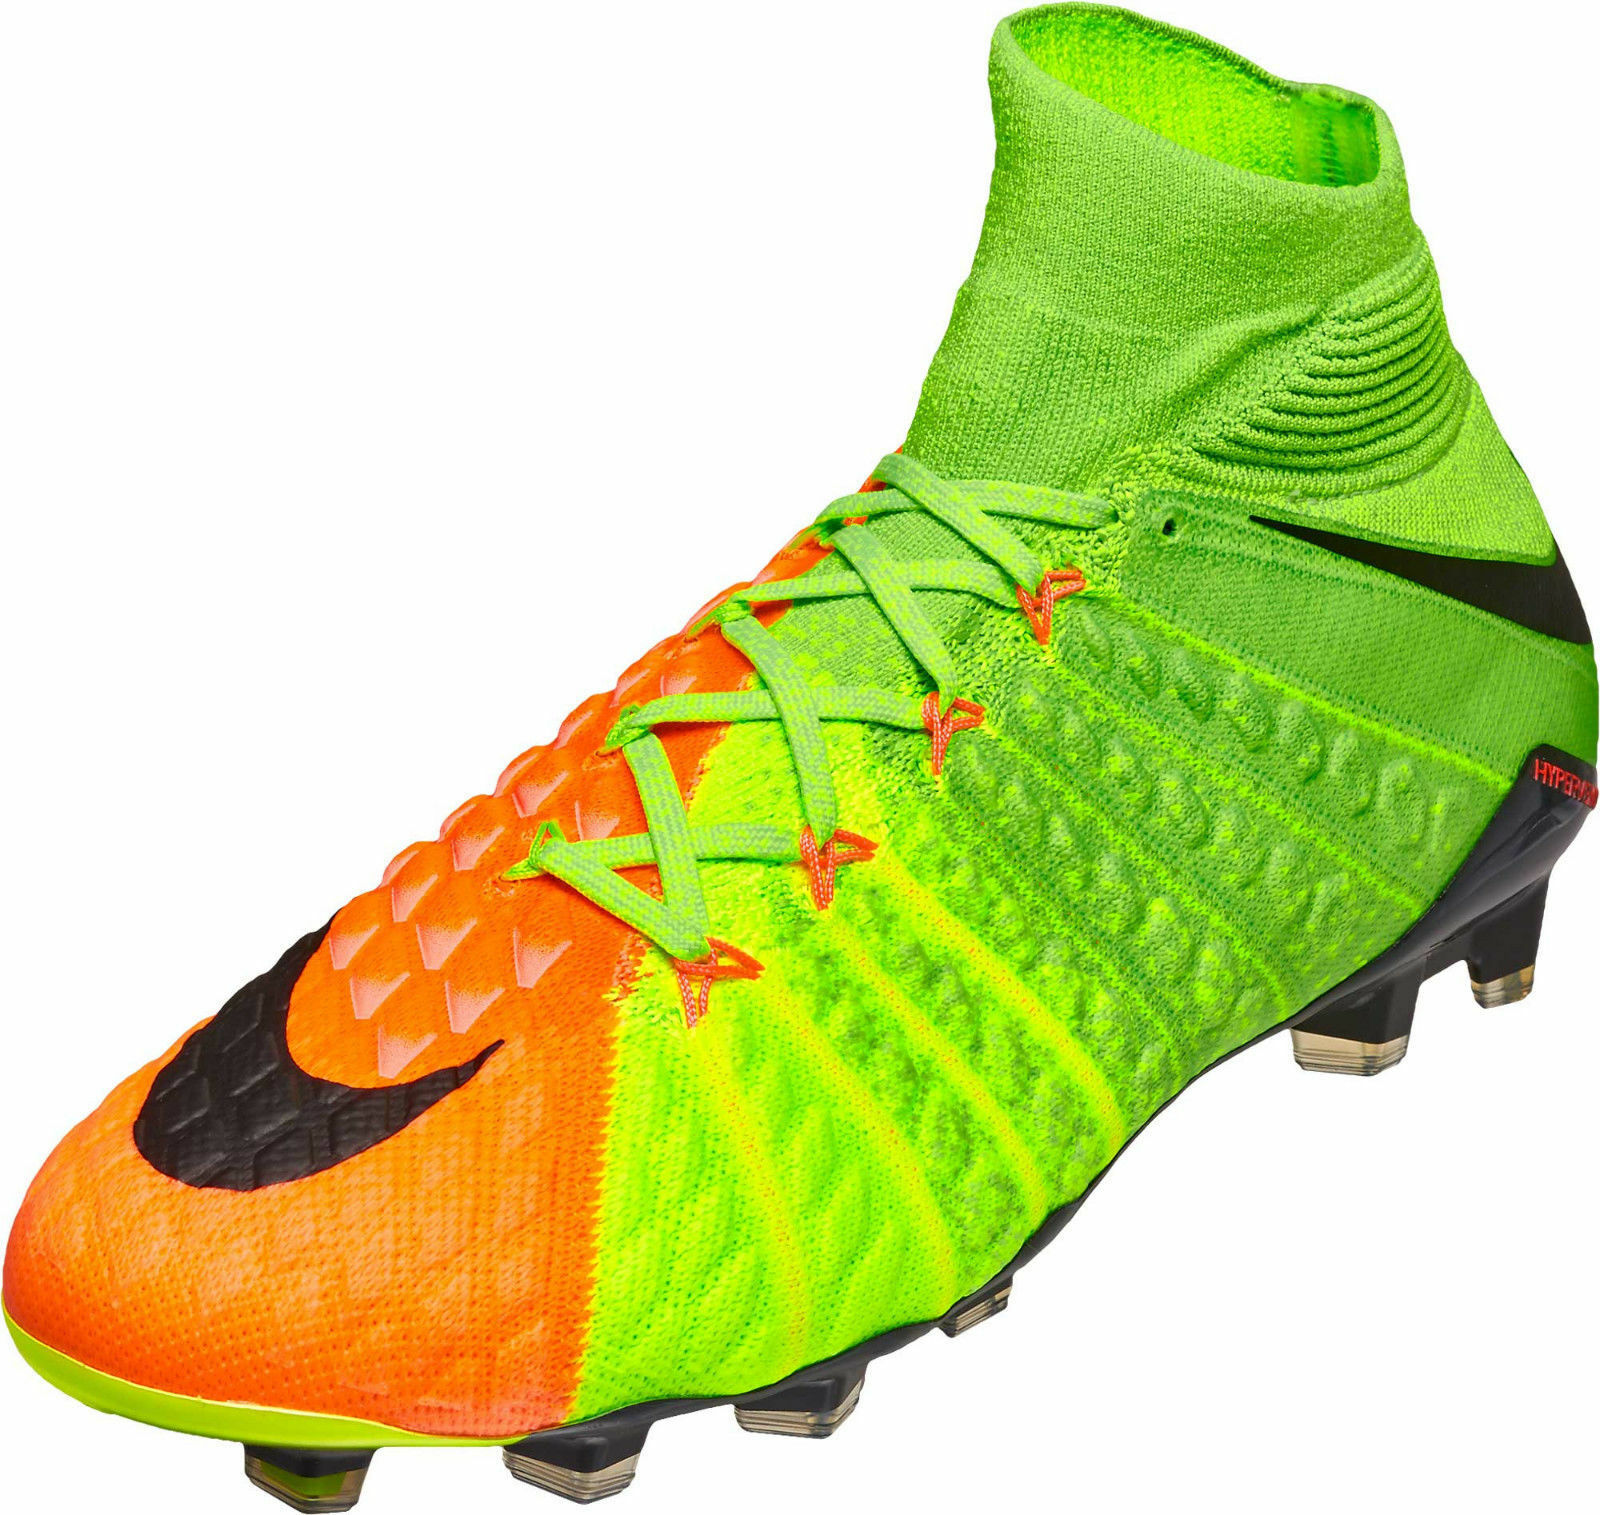 consola Exceder Temporizador  Nike Hypervenom Phantom Soccer Shoes for sale | eBay